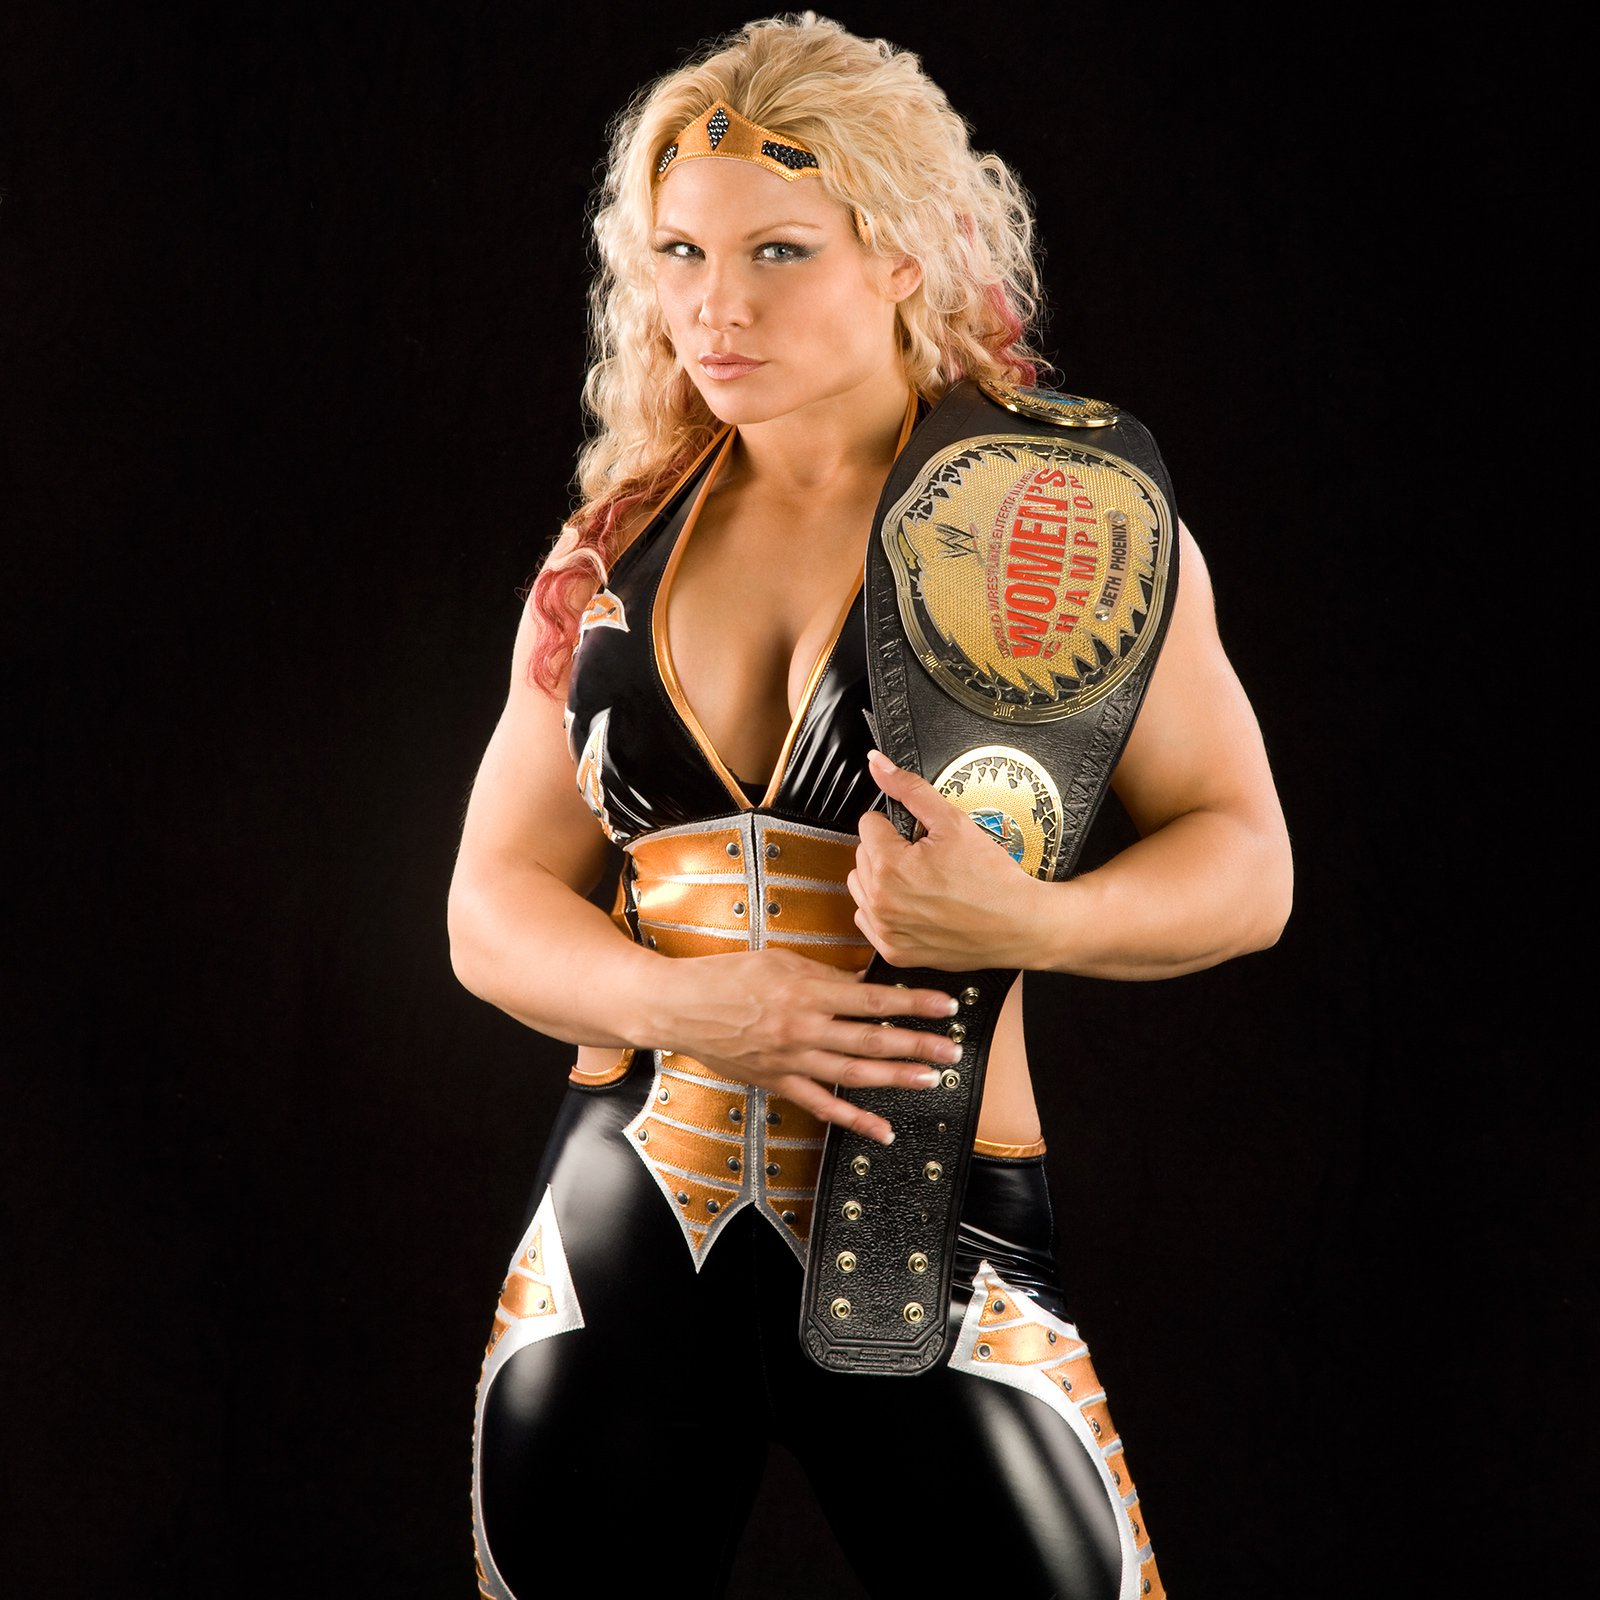 Beth Phoenix hot cleavage